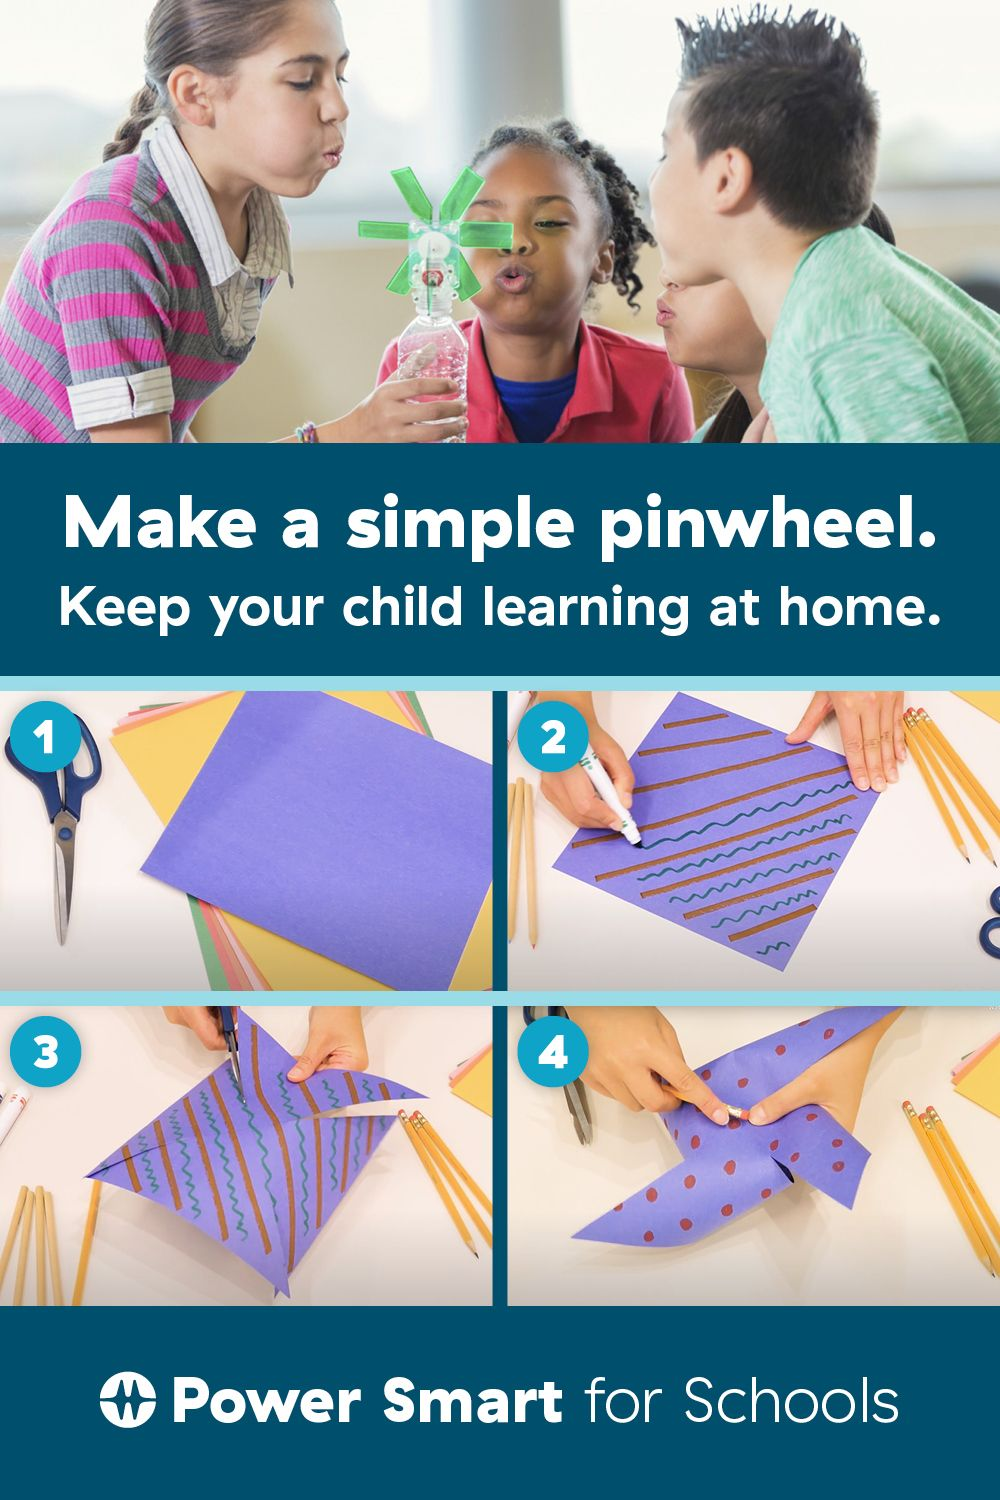 Let's make a pinwheel